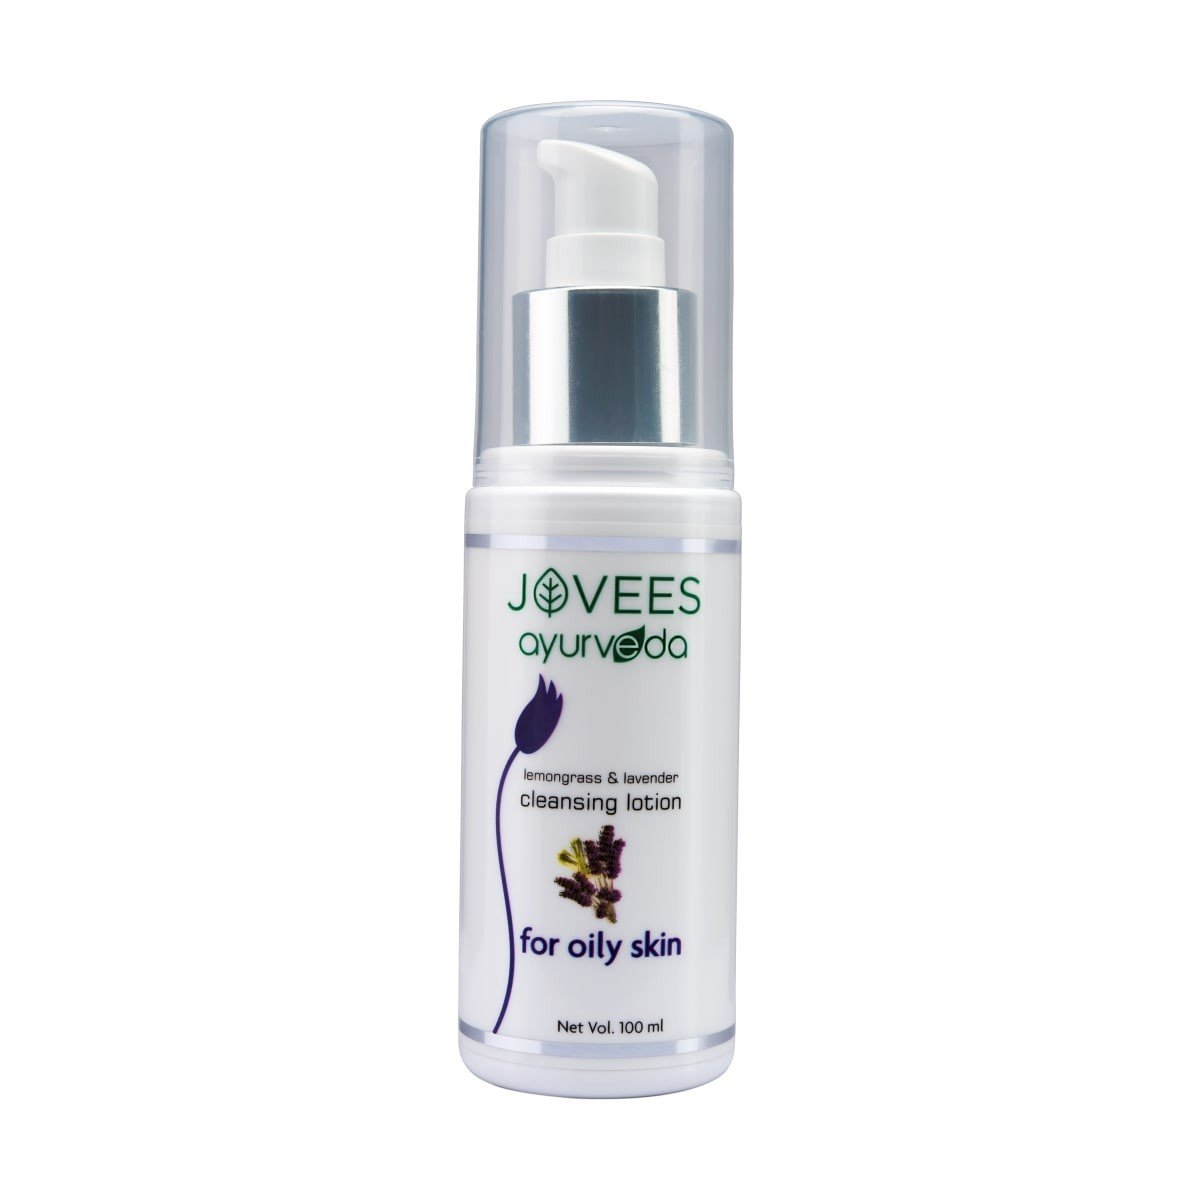 Jovees Cleansing Lotion